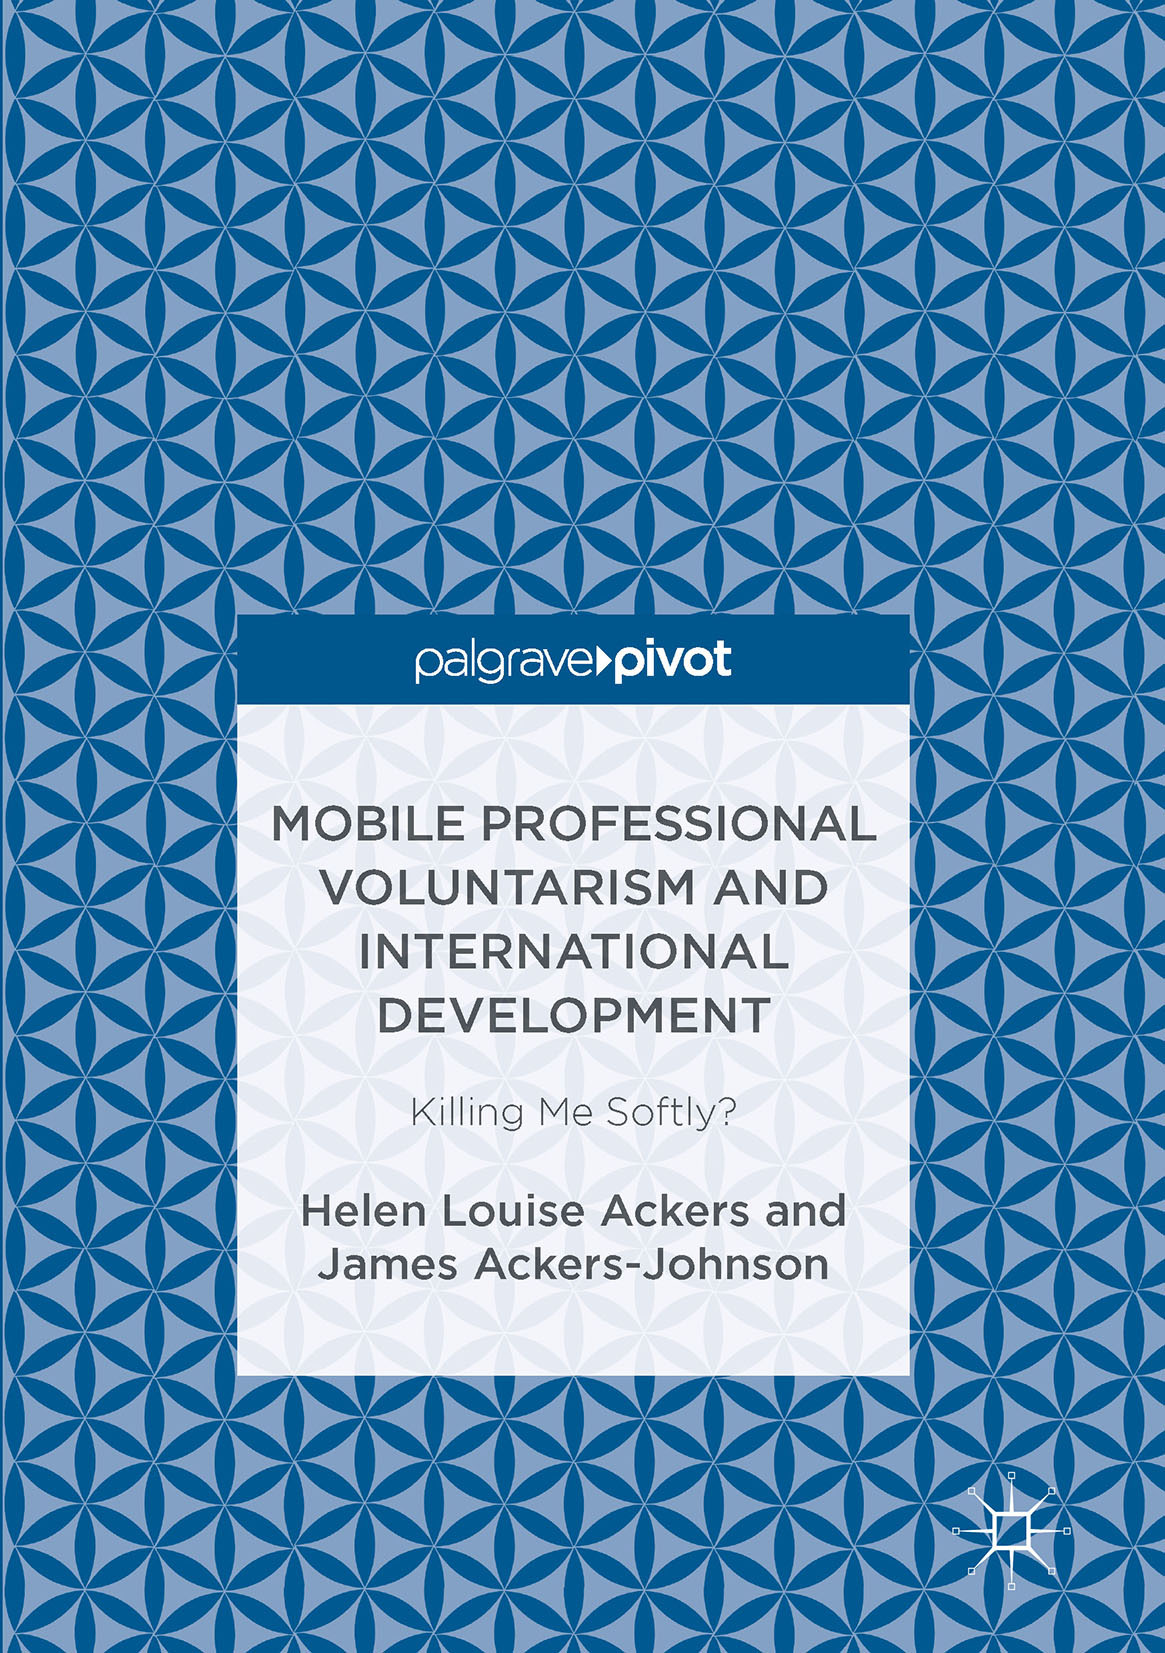 Mobile professional voluntarism and international development mobile professional voluntarism and international development ebook ellibs ebookstore fandeluxe Choice Image